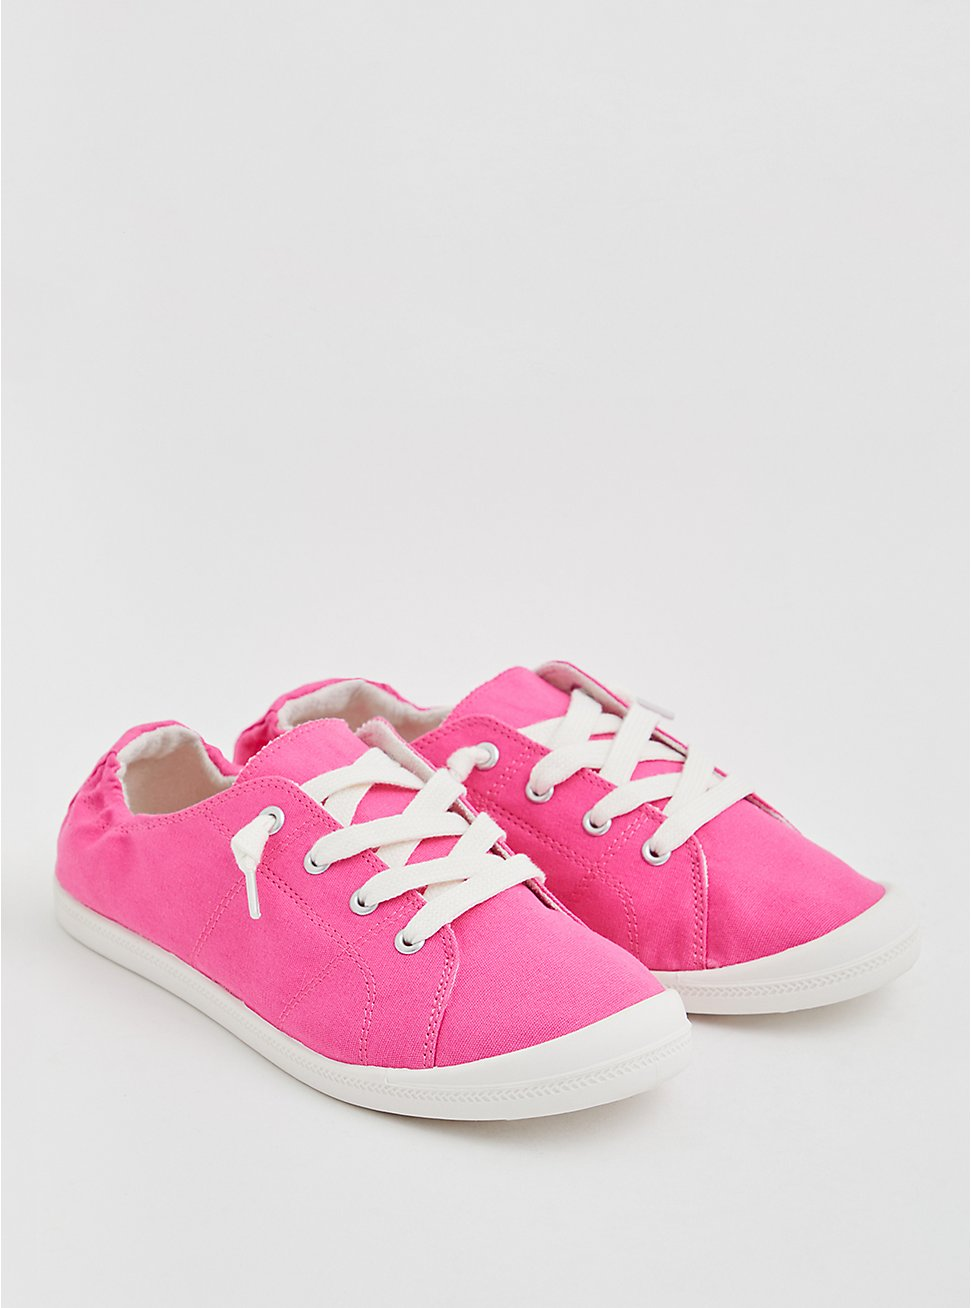 Riley - Hot Pink Ruched Sneaker (WW), PINK, hi-res